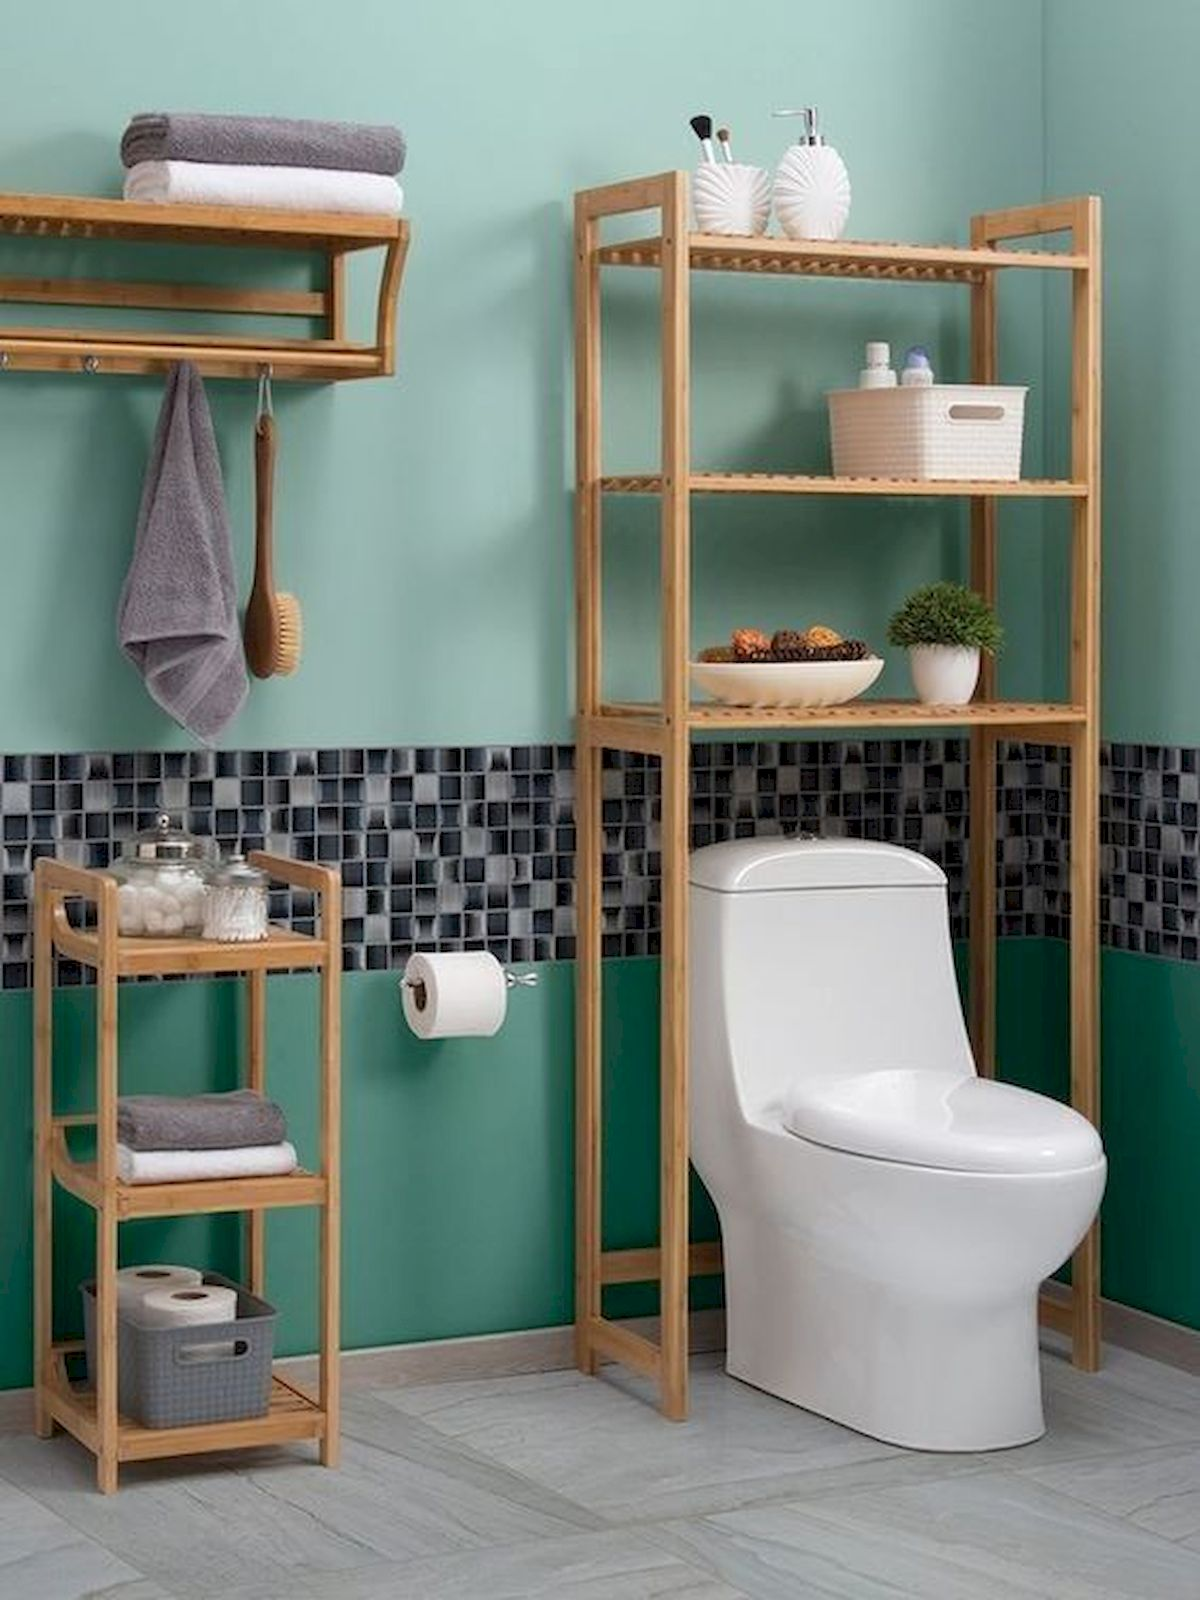 50 Best DIY Storage Design Ideas To Maximize Your Small Bathroom Space (7)